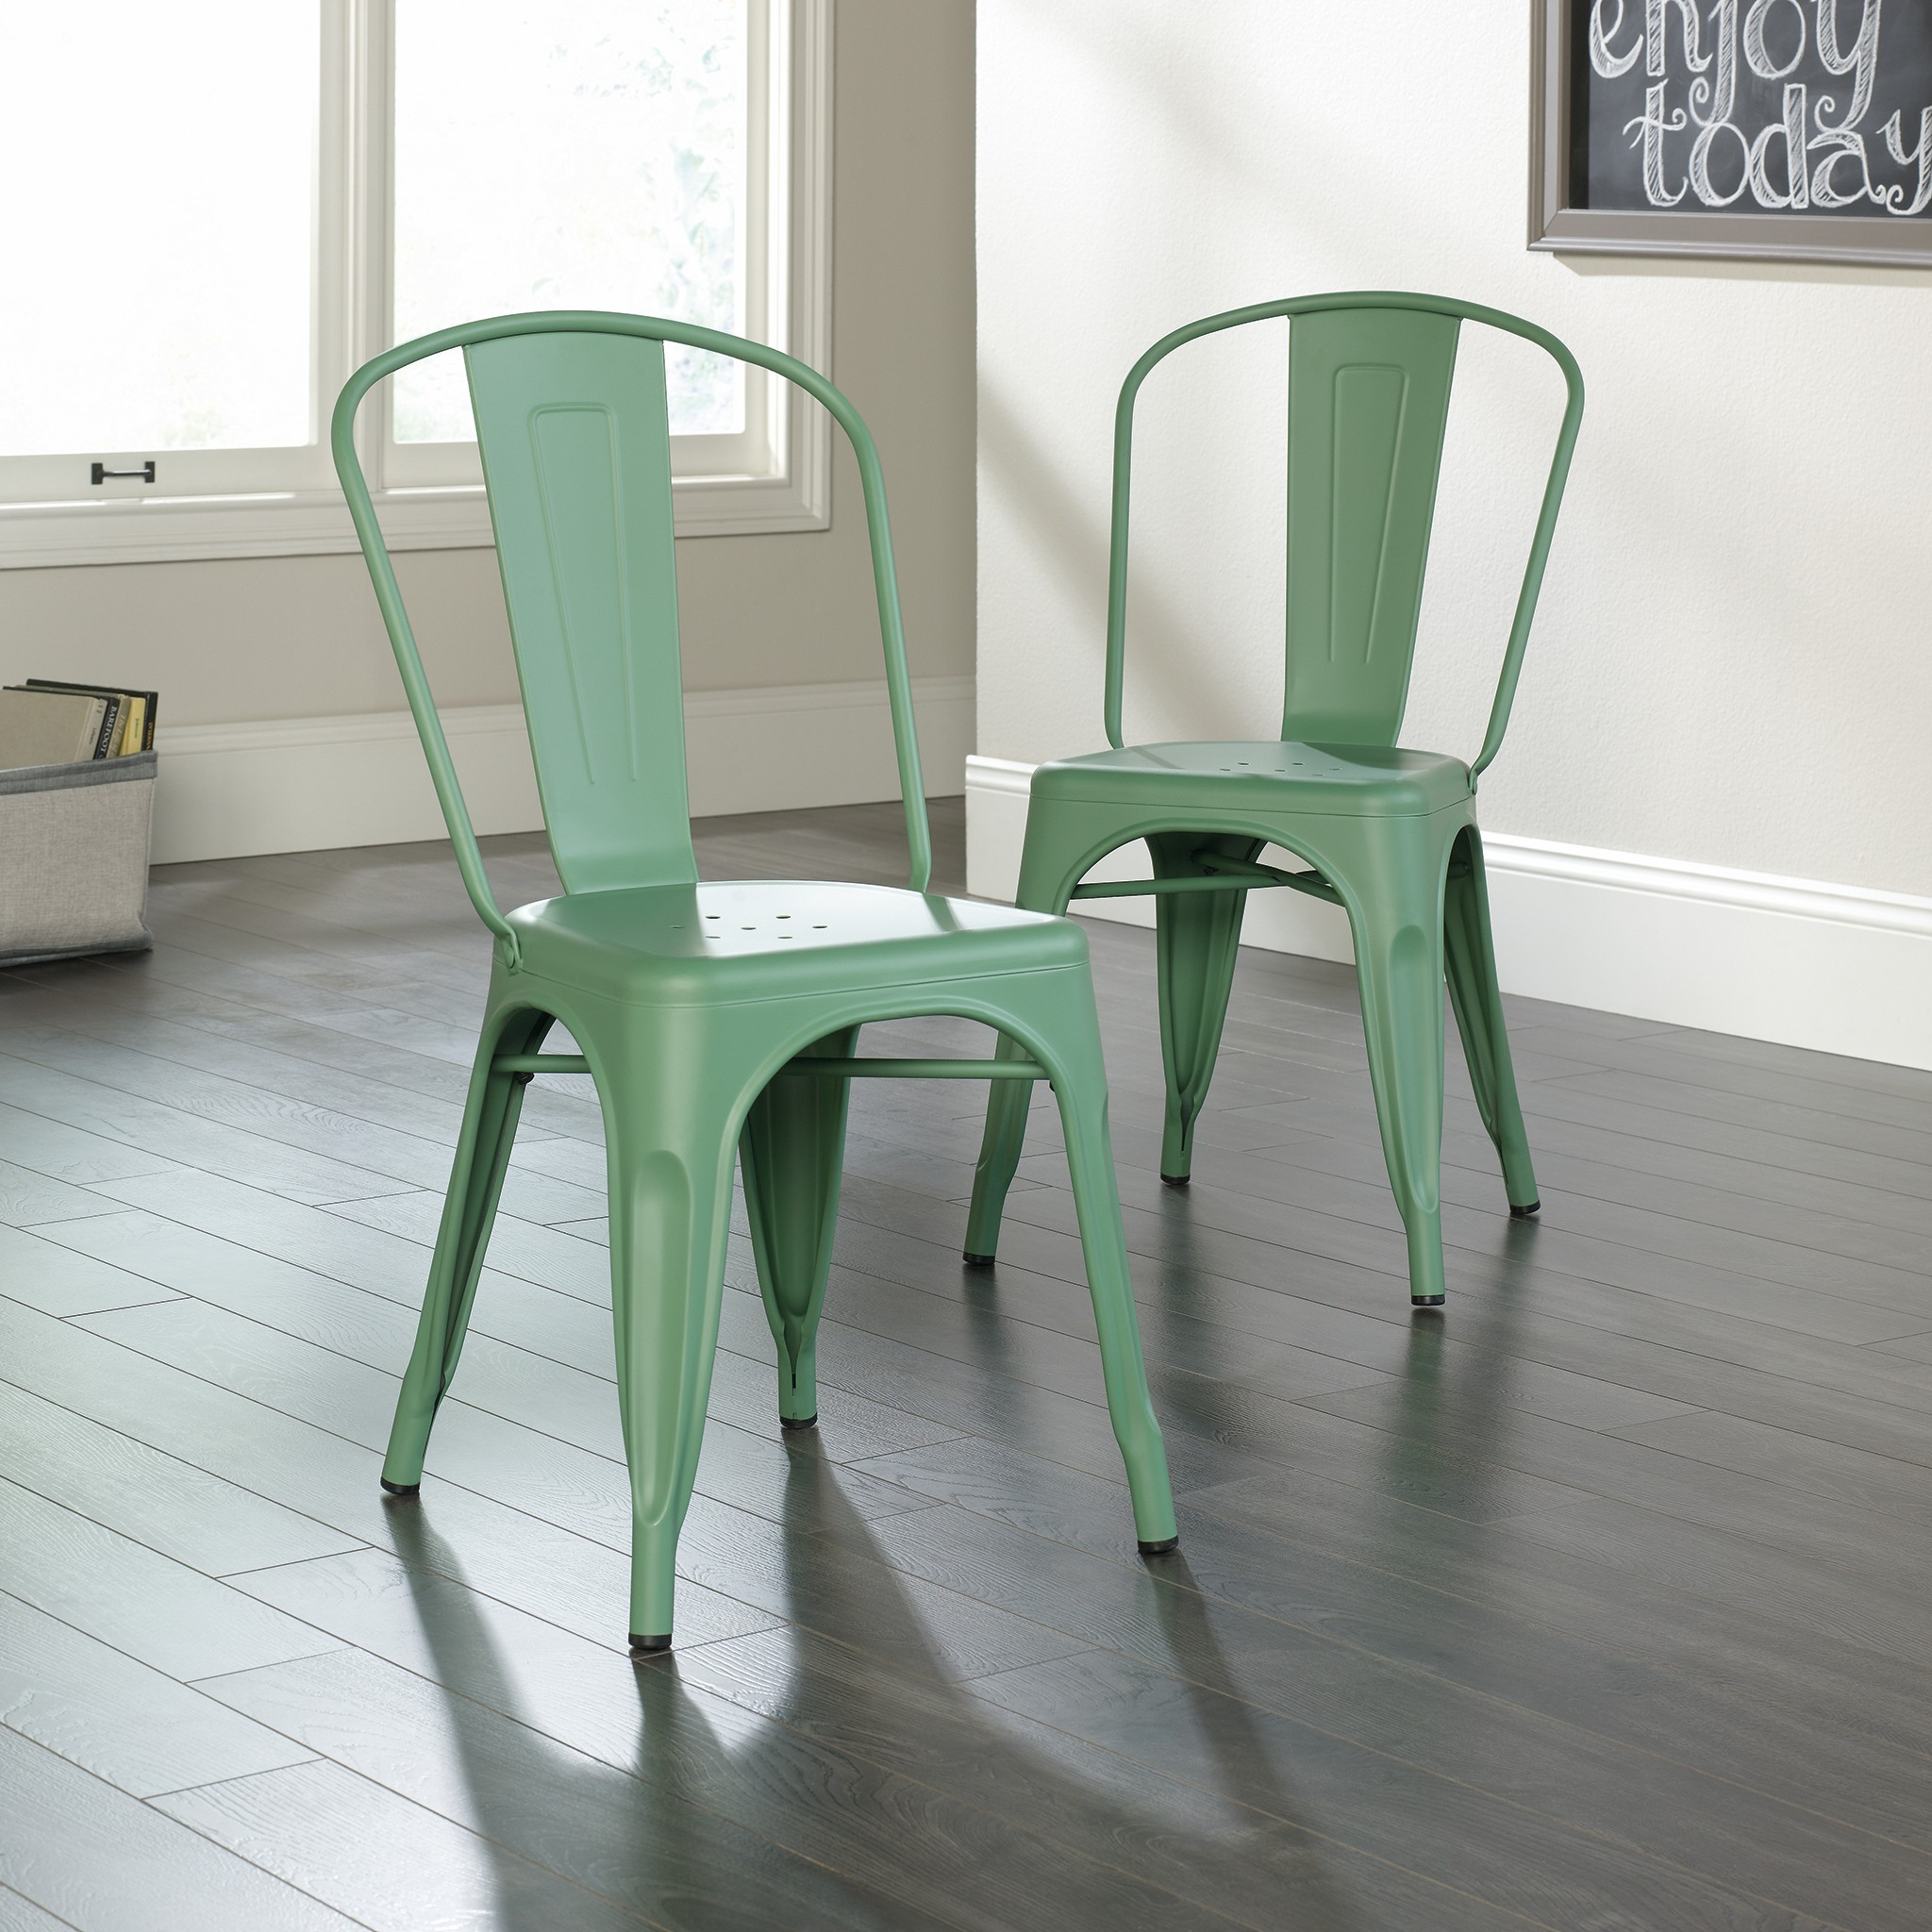 Dining Room Chairs Favorites to Mix and Match FARMHOUSE MADE